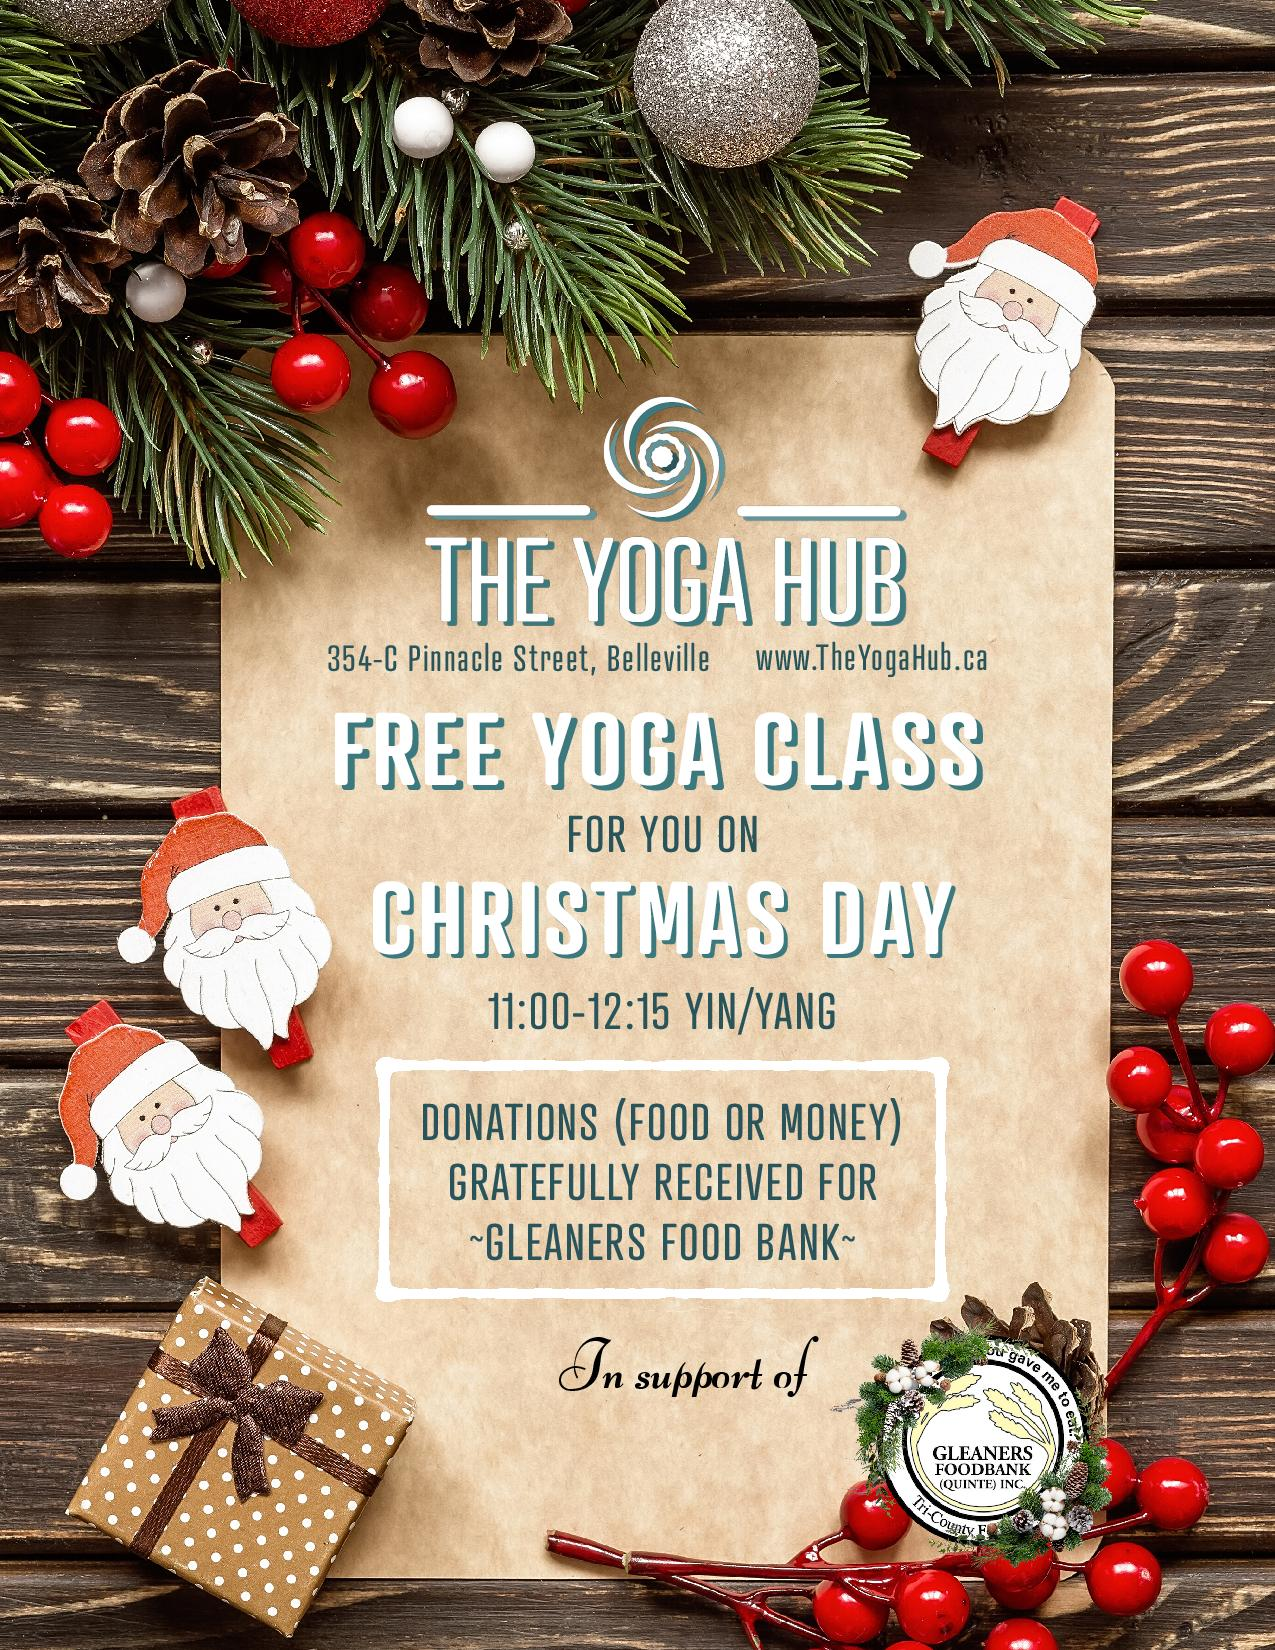 Free Yoga class @ The Yoga Hub